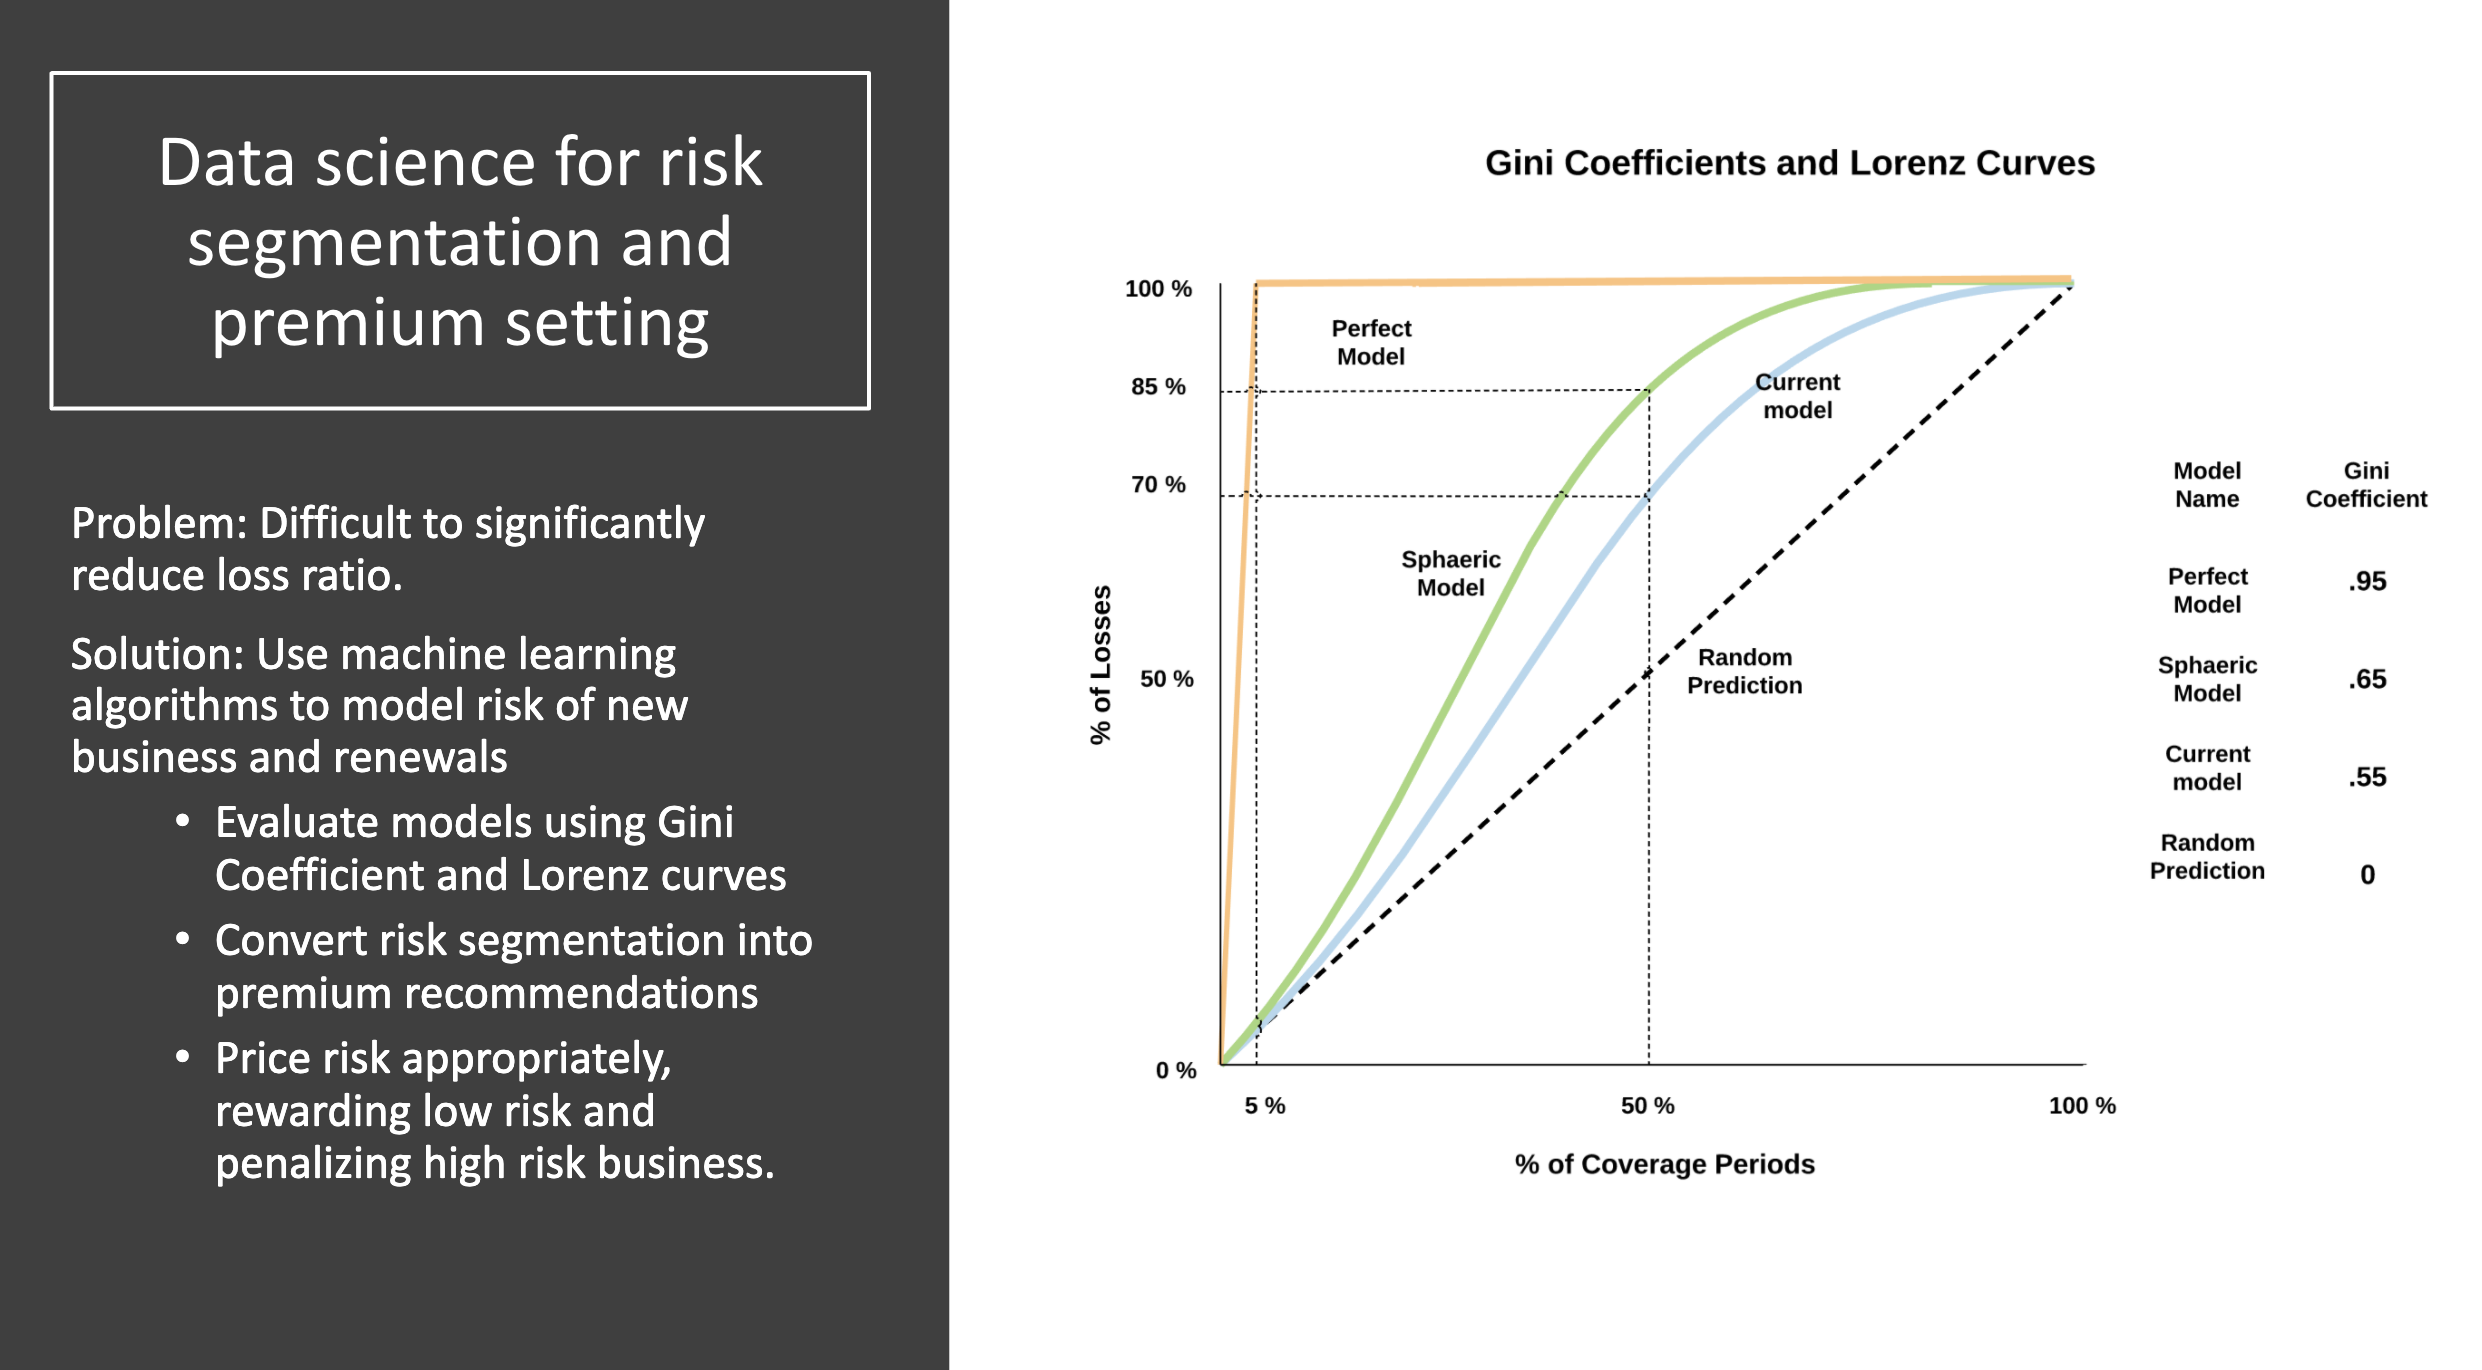 Data science for risk segmentation and premium setting